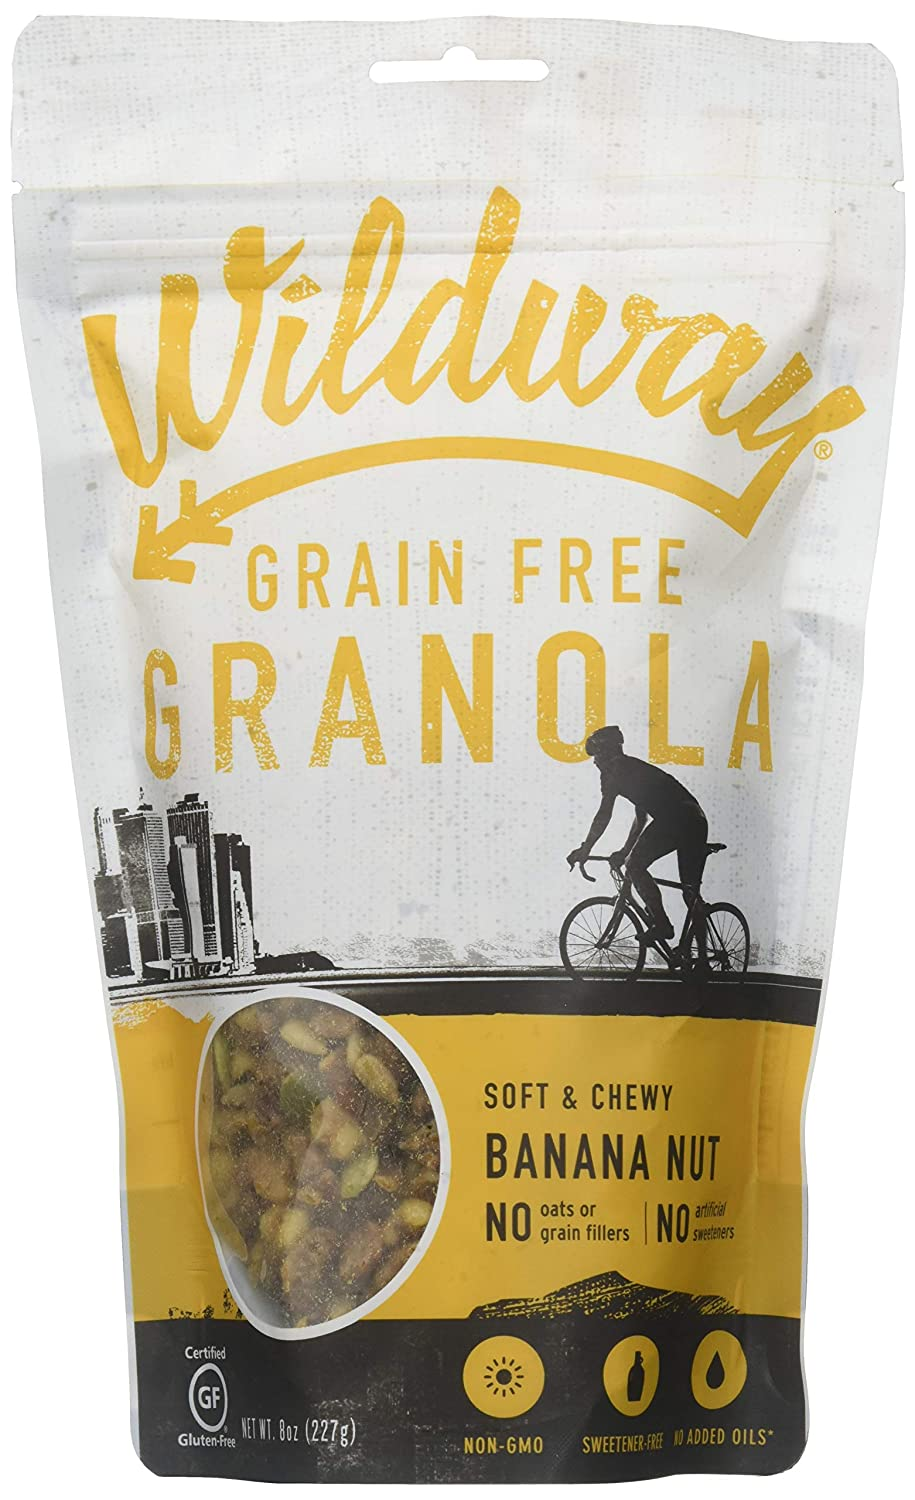 Wildway Keto, Vegan Granola | Banana Nut | Certified Gluten Free Granola Breakfast Cereal, Low Carb Snack | Paleo, Grain Free, Non GMO, Dairy Free, No Artificial Sweetener | 8oz, 3 pack